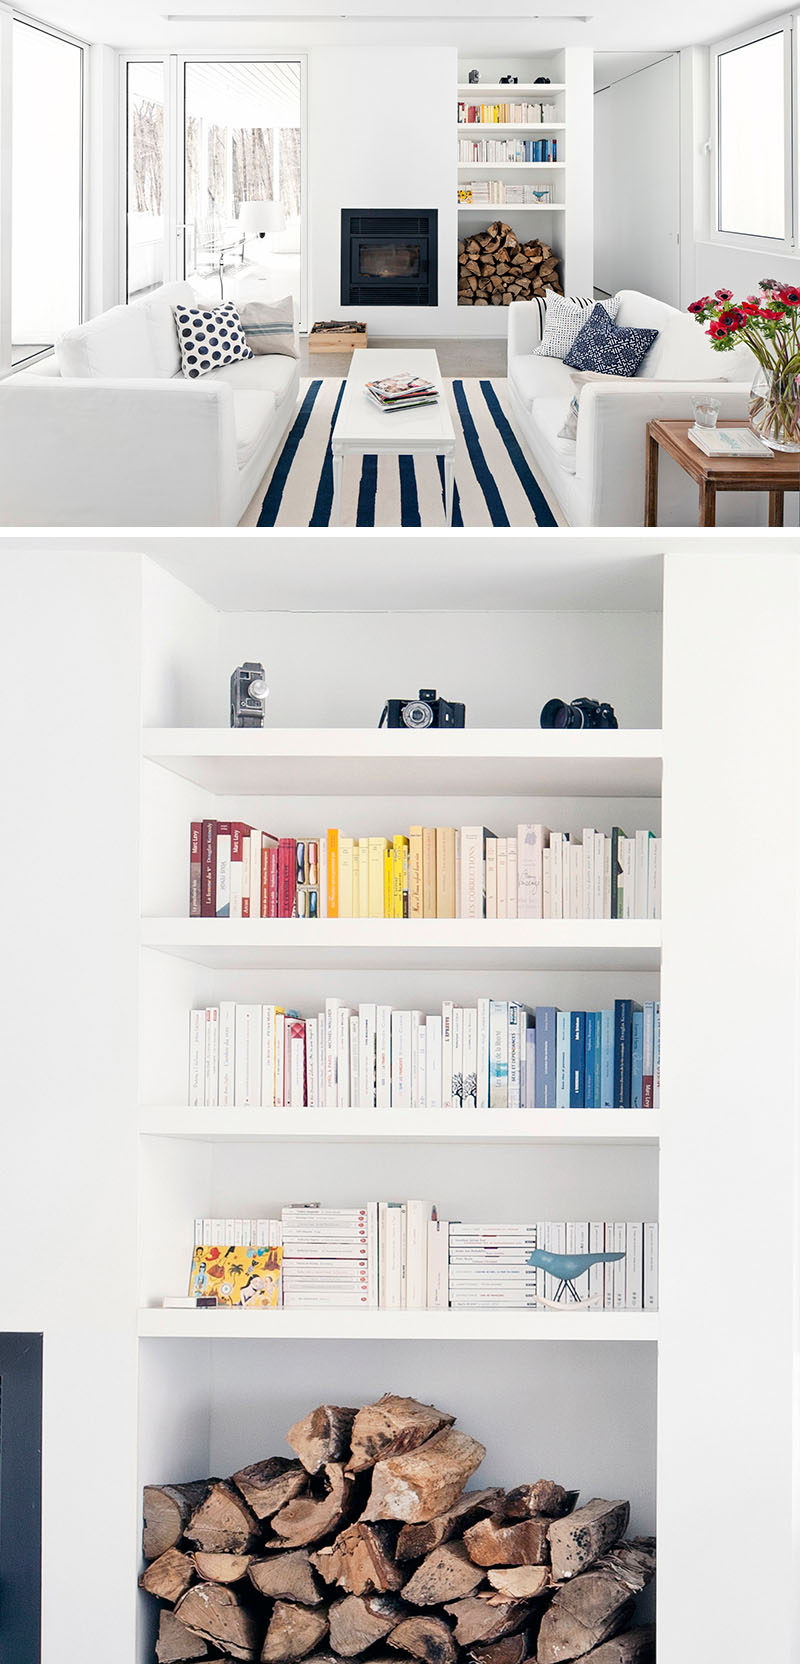 9 Ideas for Creating a Stylish Bookshelf // Add pops of color --- Adding a few touches of color to an all white display can make a big impact and help make your shelves stand out.